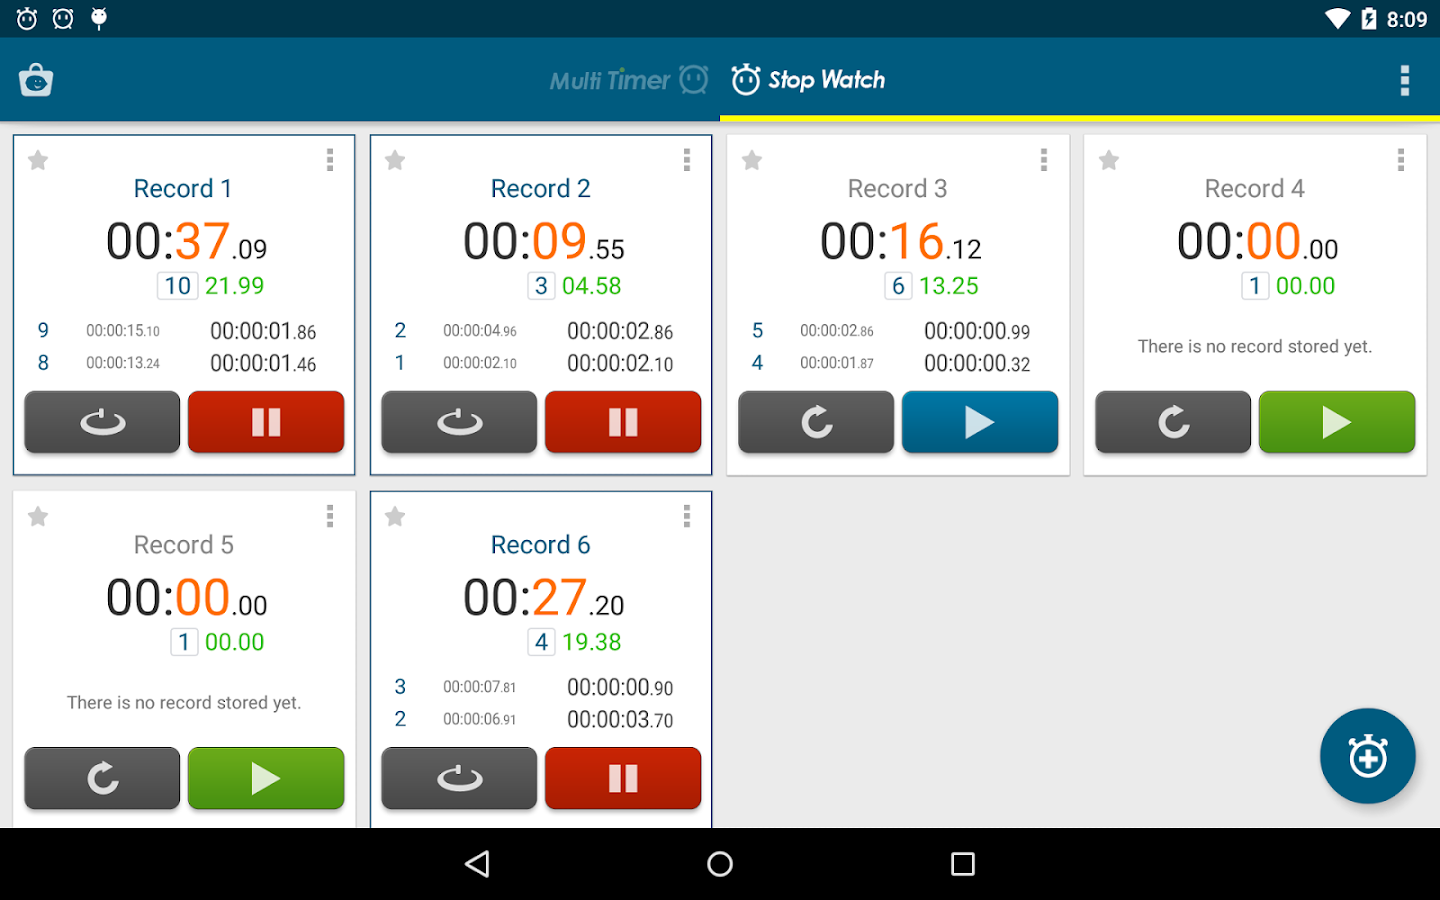 Multi Timer StopWatch Screenshot 14